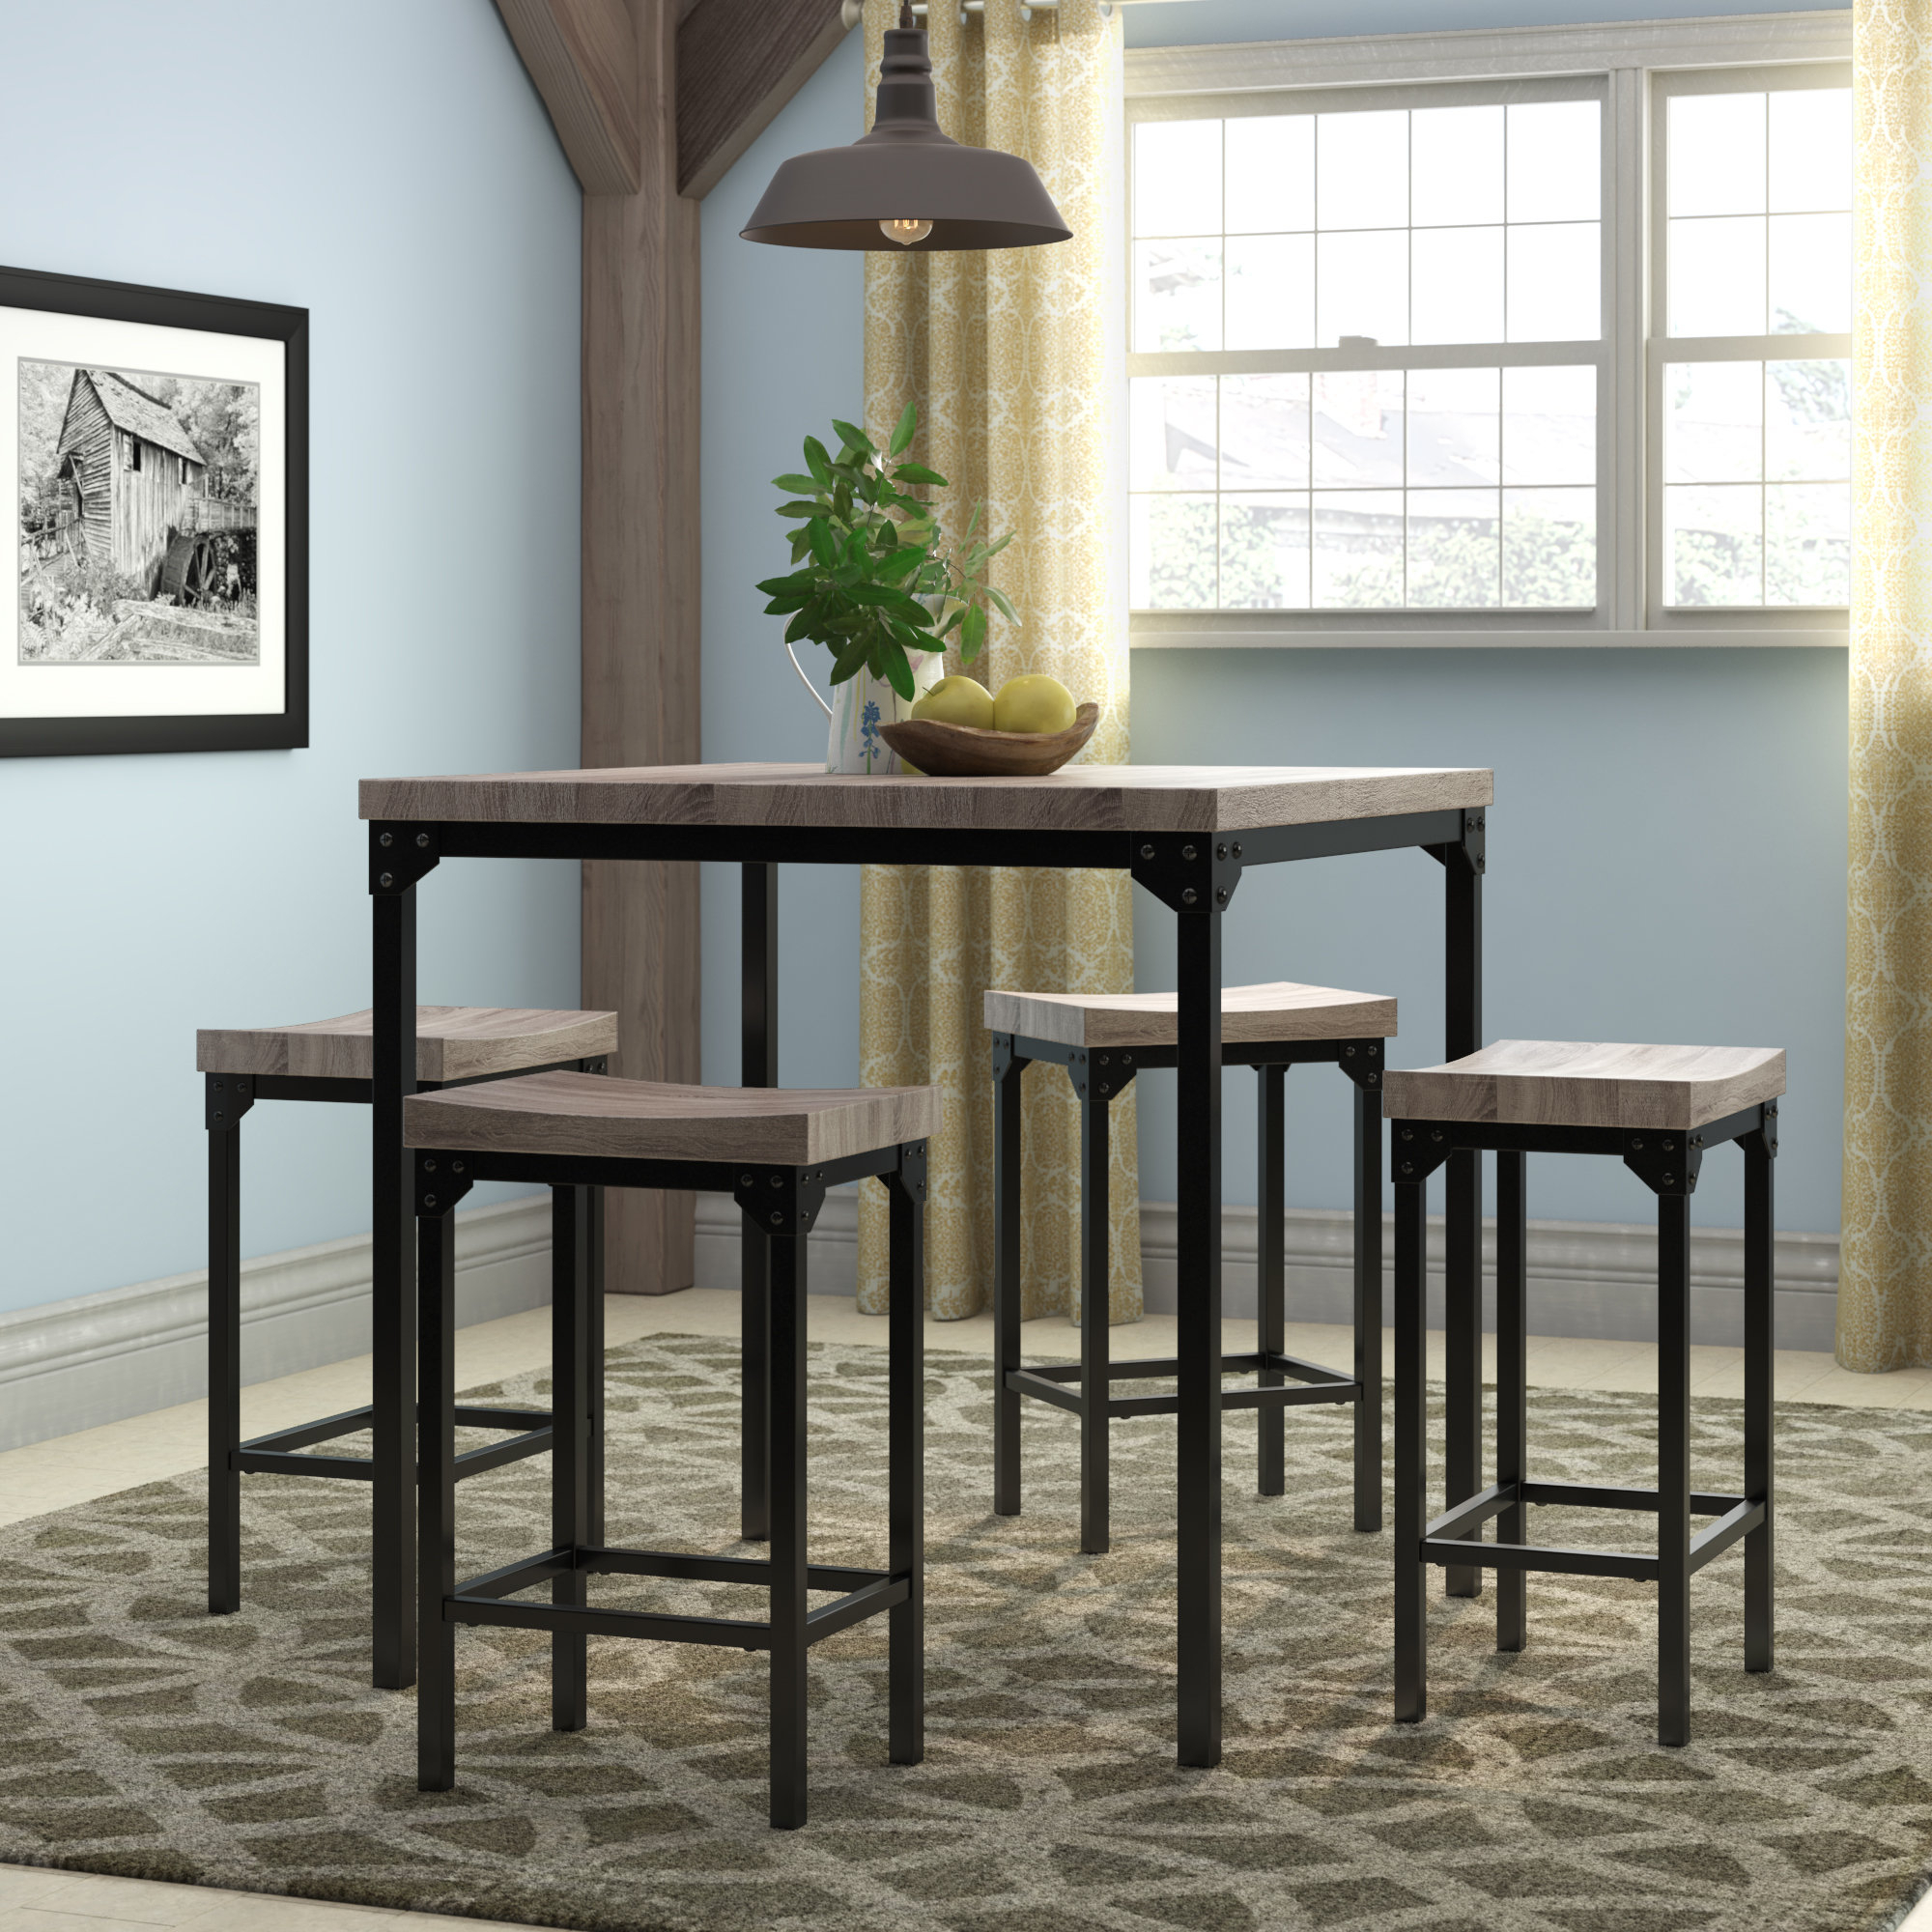 Wayfair In Denzel 5 Piece Counter Height Breakfast Nook Dining Sets (View 4 of 25)